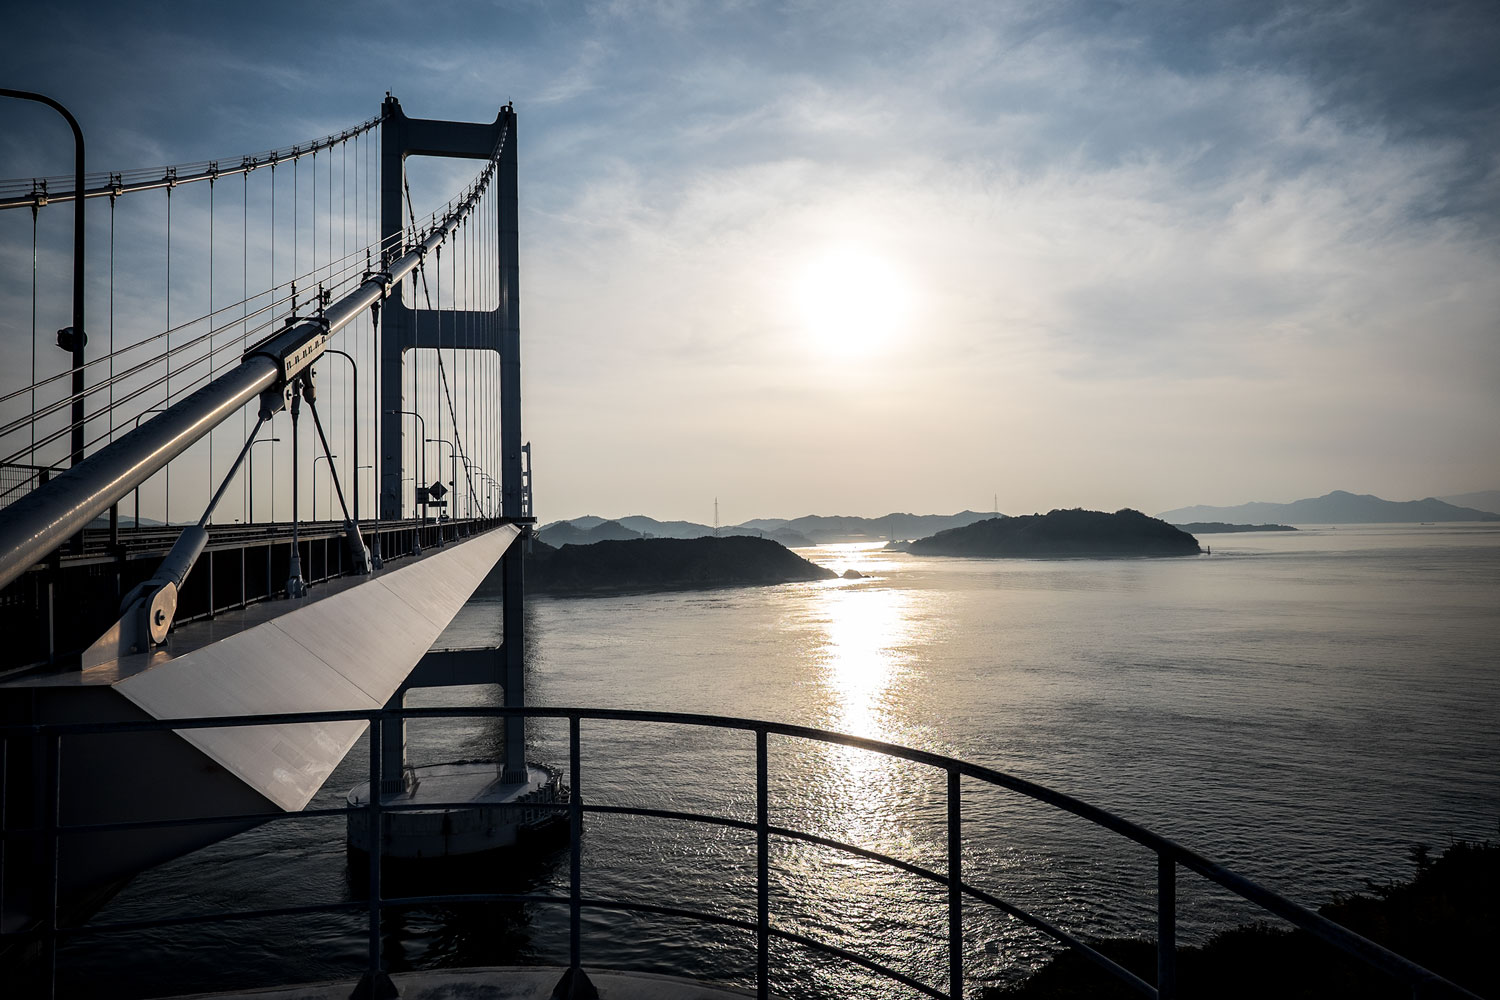 The sunset over the first bridge of the Shimanami Kaidō, which is over 3km long